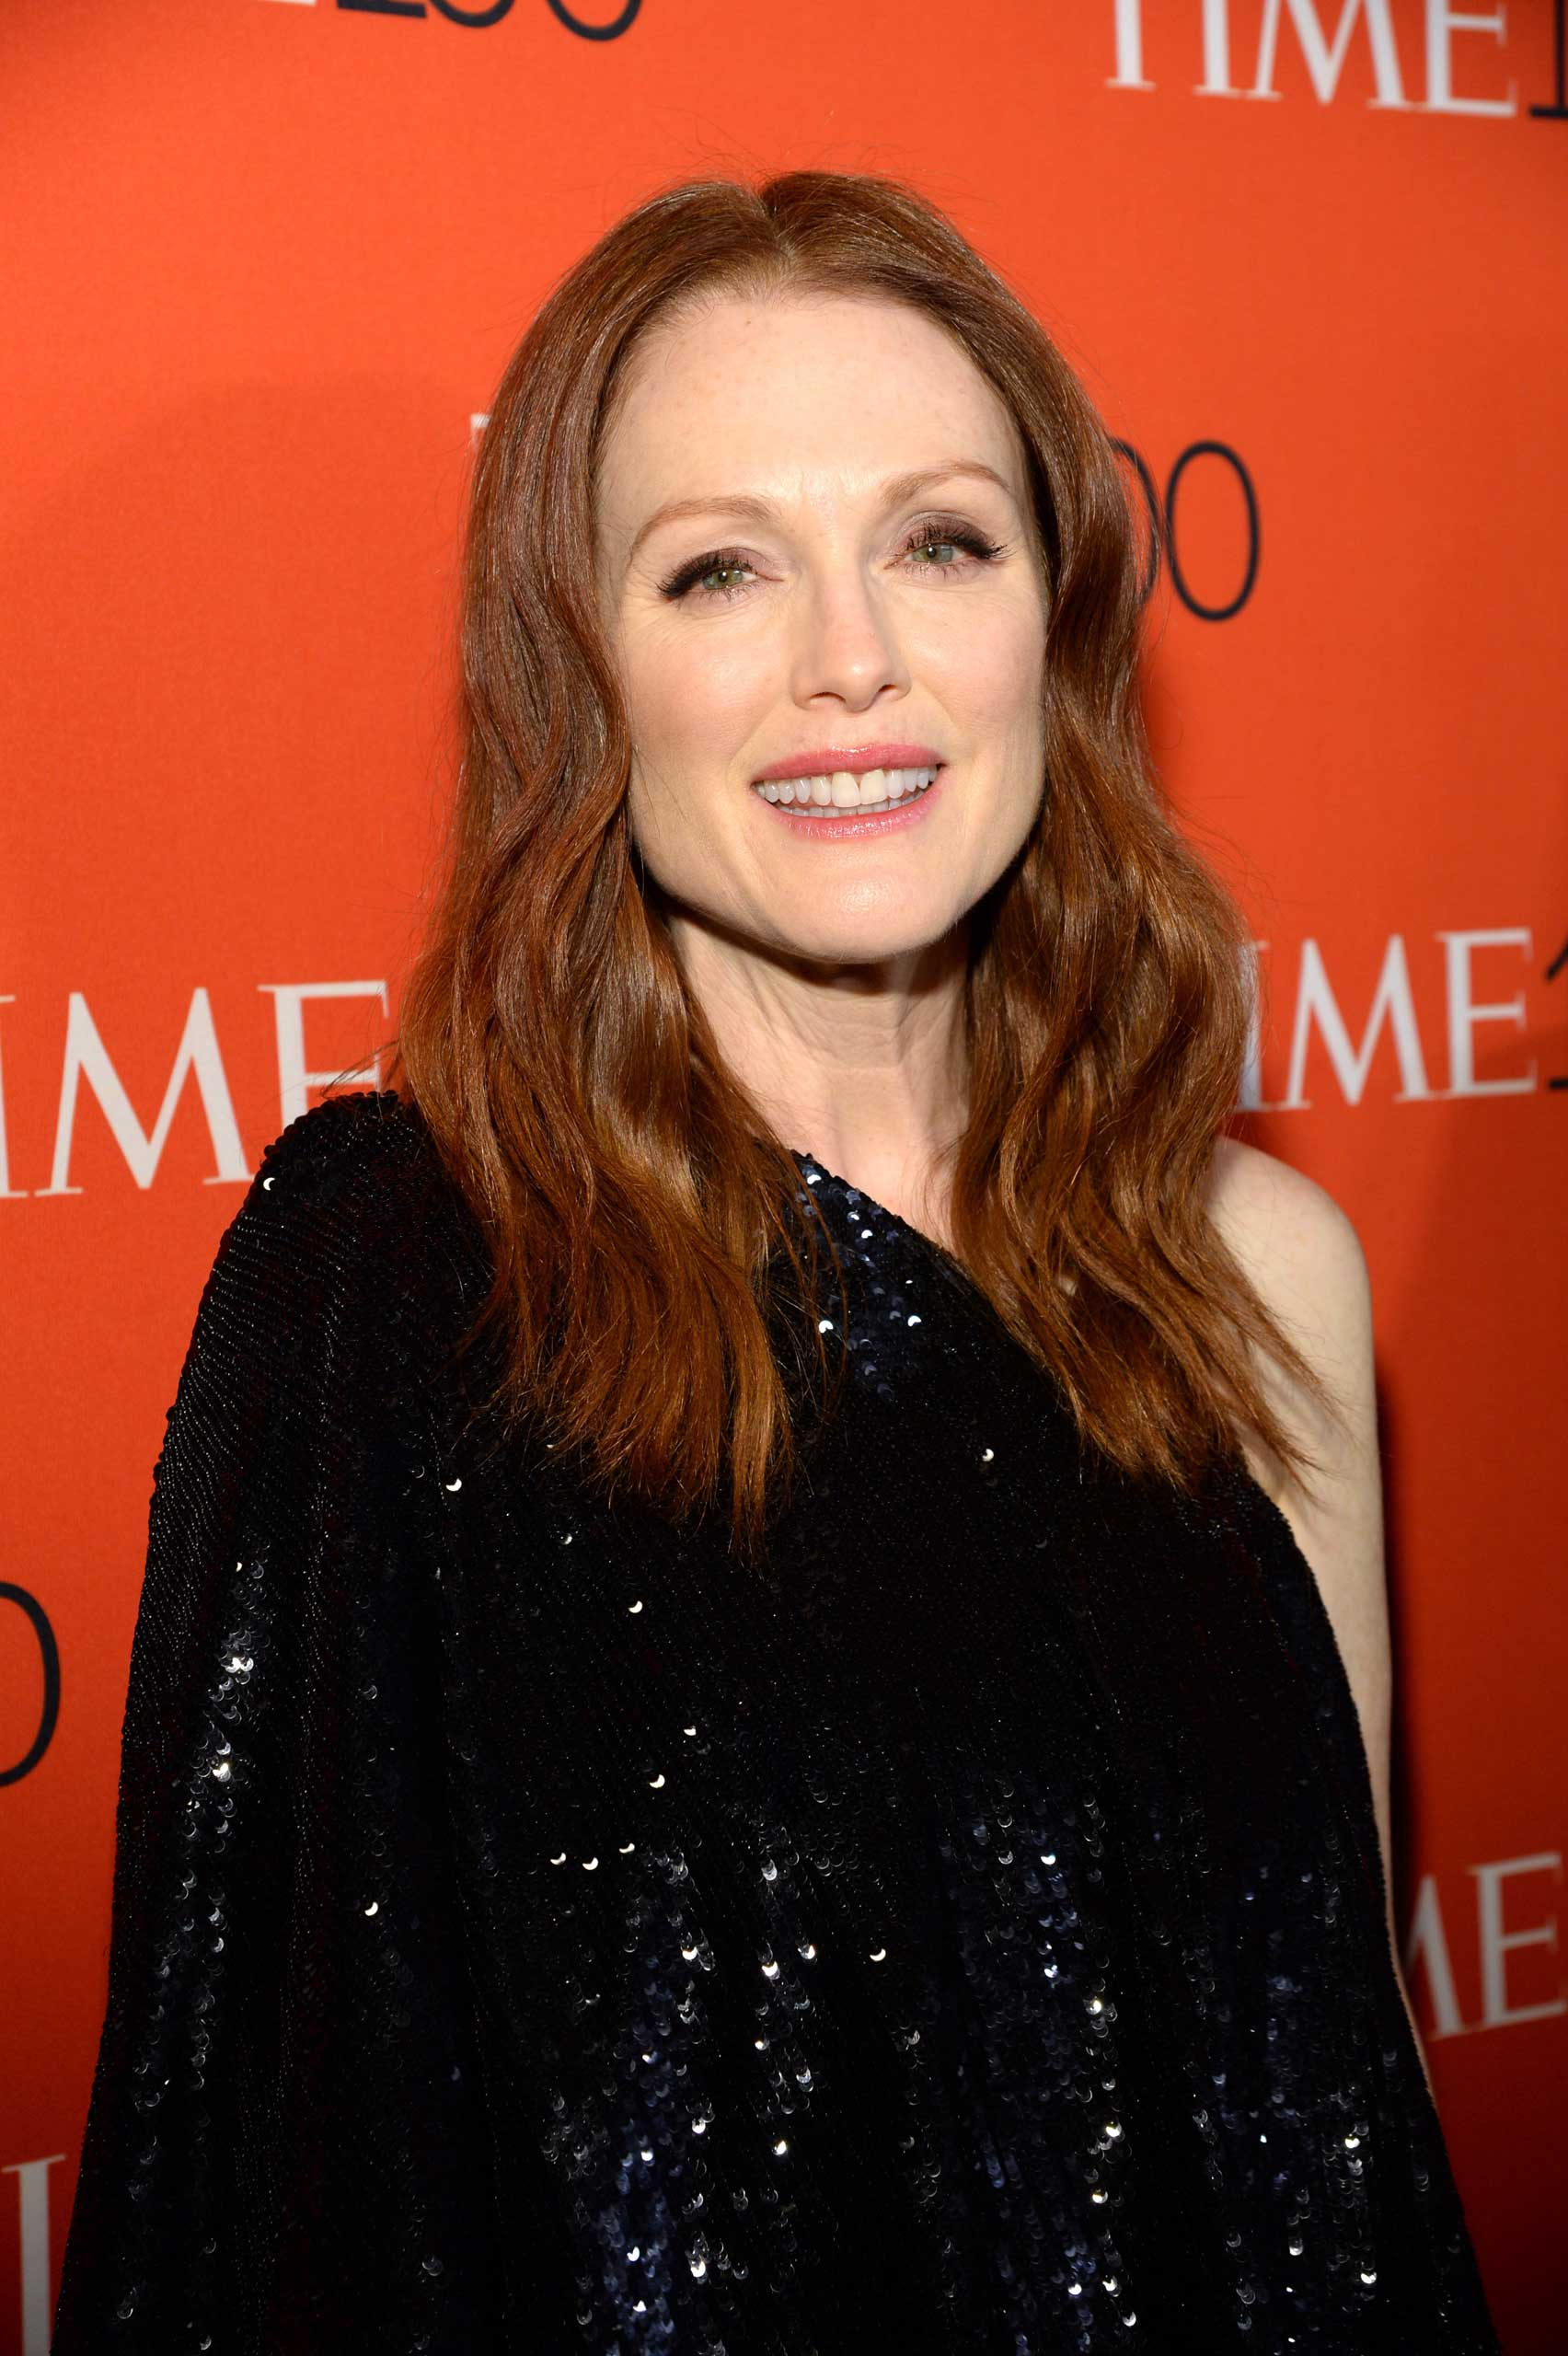 Julianne Moore attends the TIME 100 Gala at Jazz at Lincoln Center in New York City on Apr. 21, 2015.